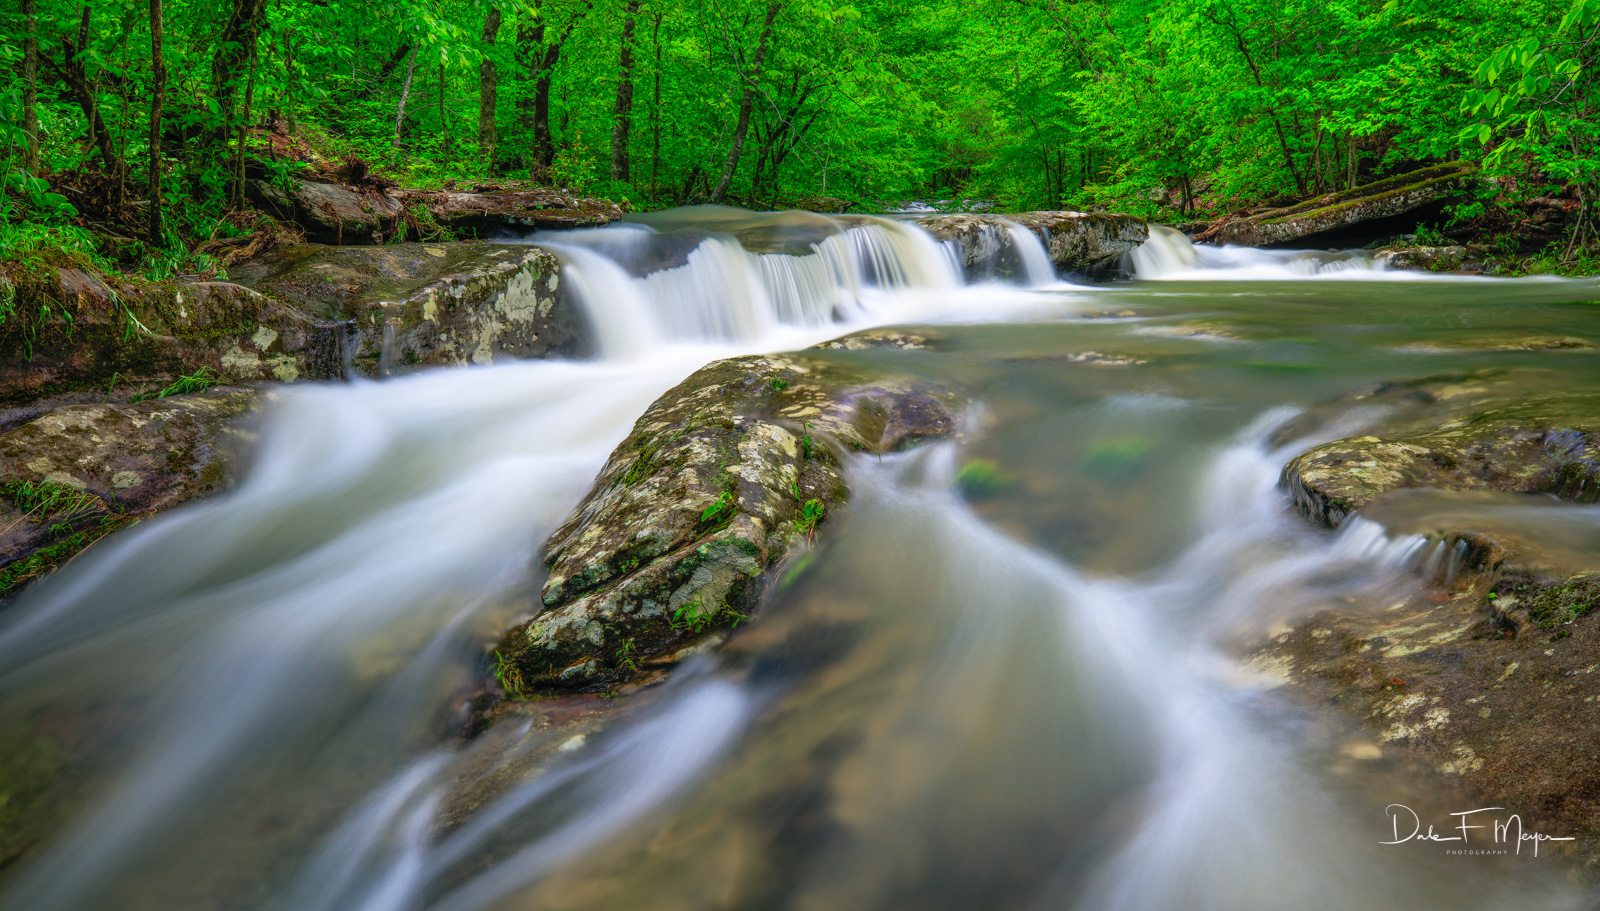 Spring 2017, Upper Buffalo Wilderness Area, Whitaker Creek Arkansas, ozark national forest, rivers streams and waterfalls gallery, water flow, waterfall, photo